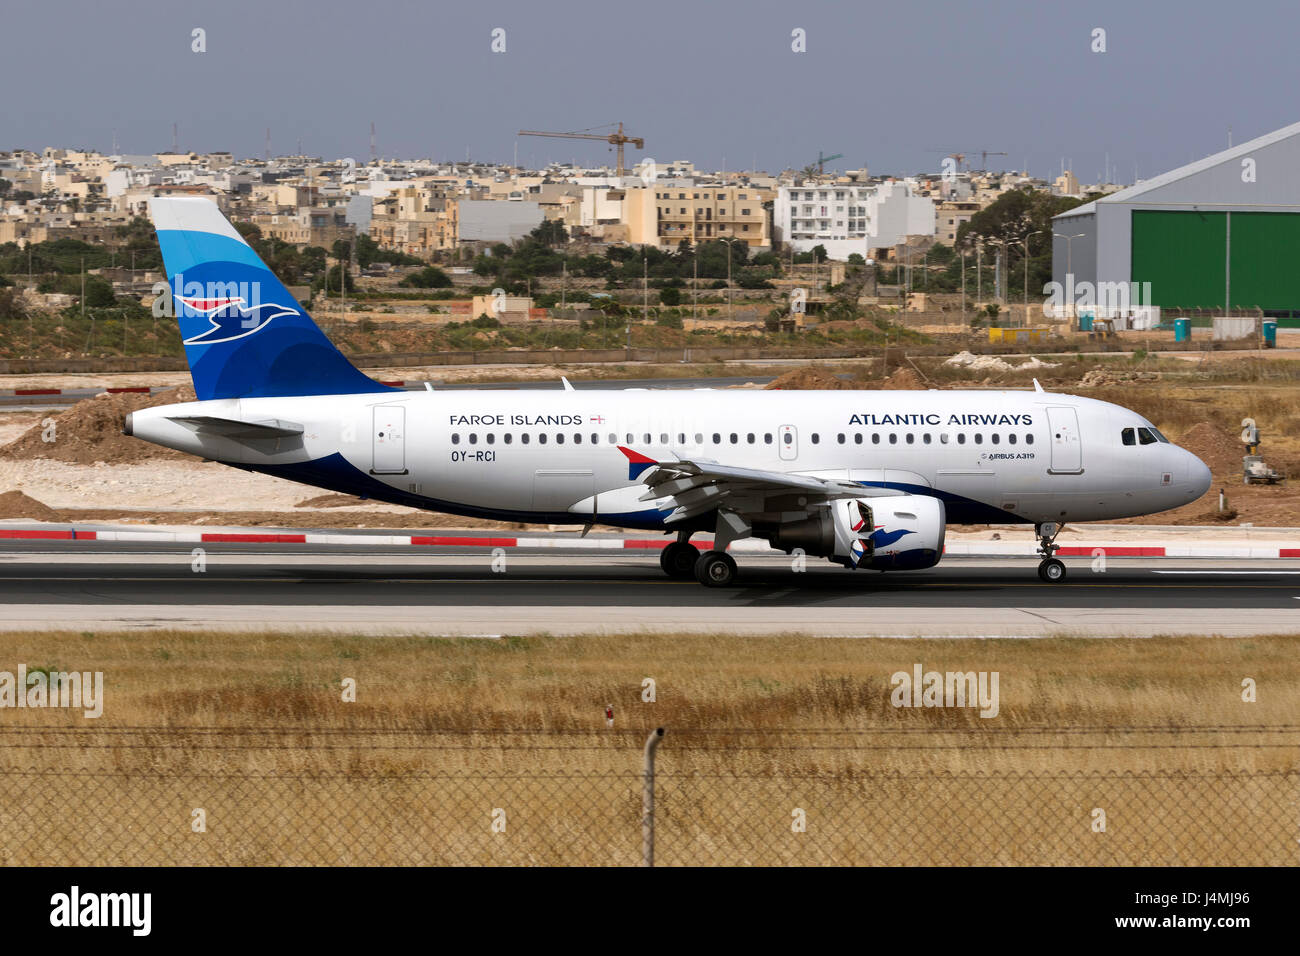 Atlantic Airways Airbus A320-112 [OY-RCI] landing runway 31. - Stock Image